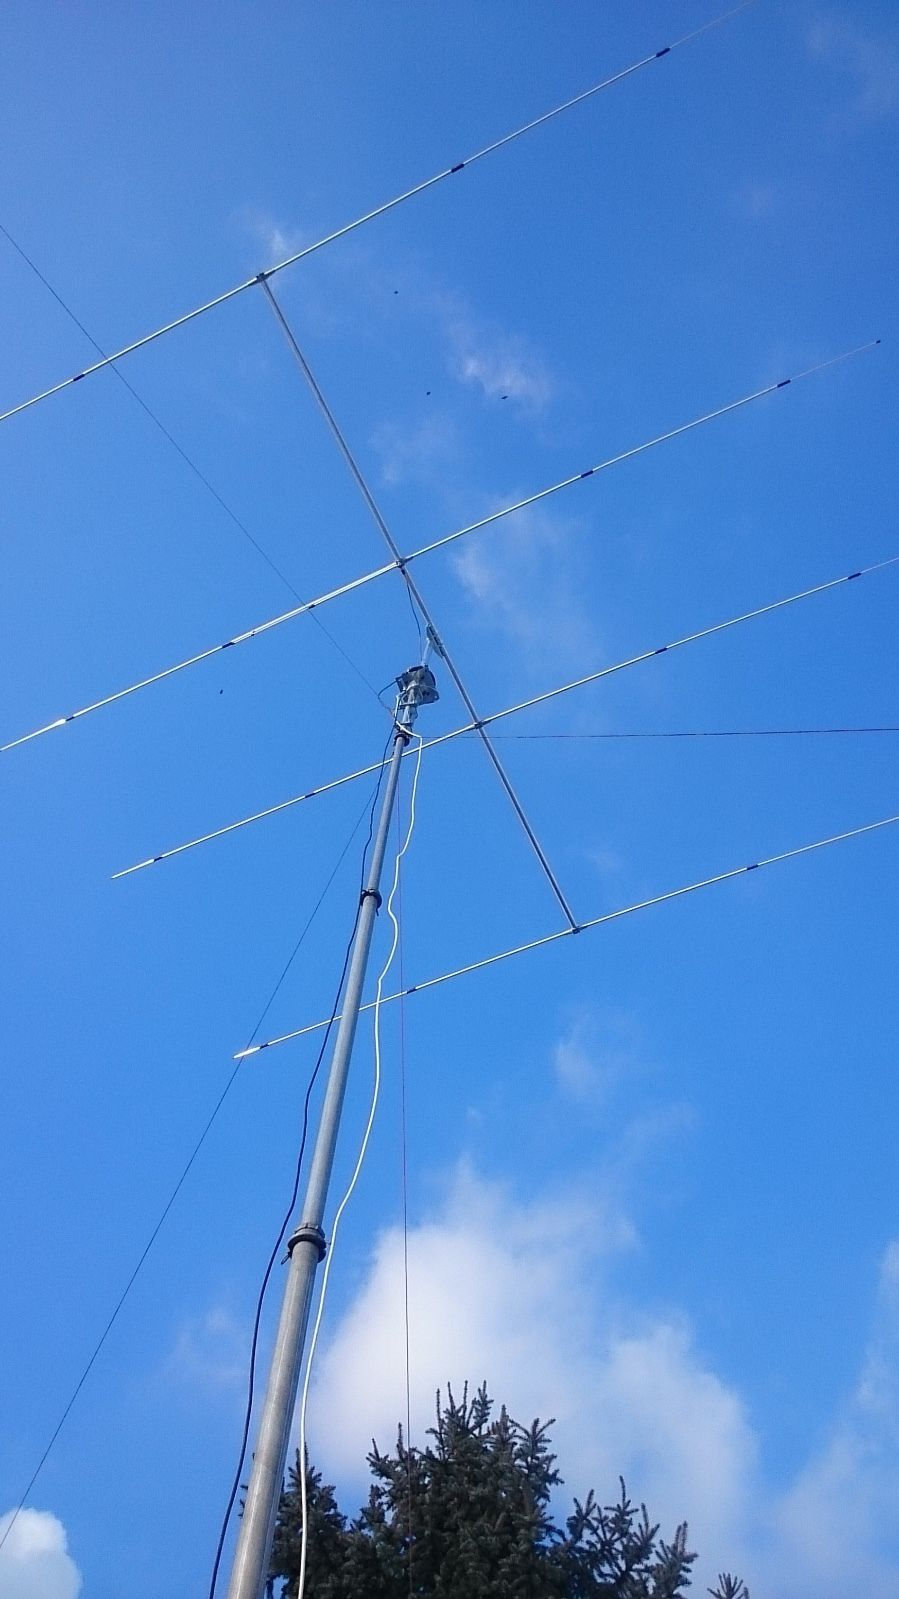 Sirio SY 27-4 4 elements 26.5 - 30 Mhz Tunable Yagi Antenna